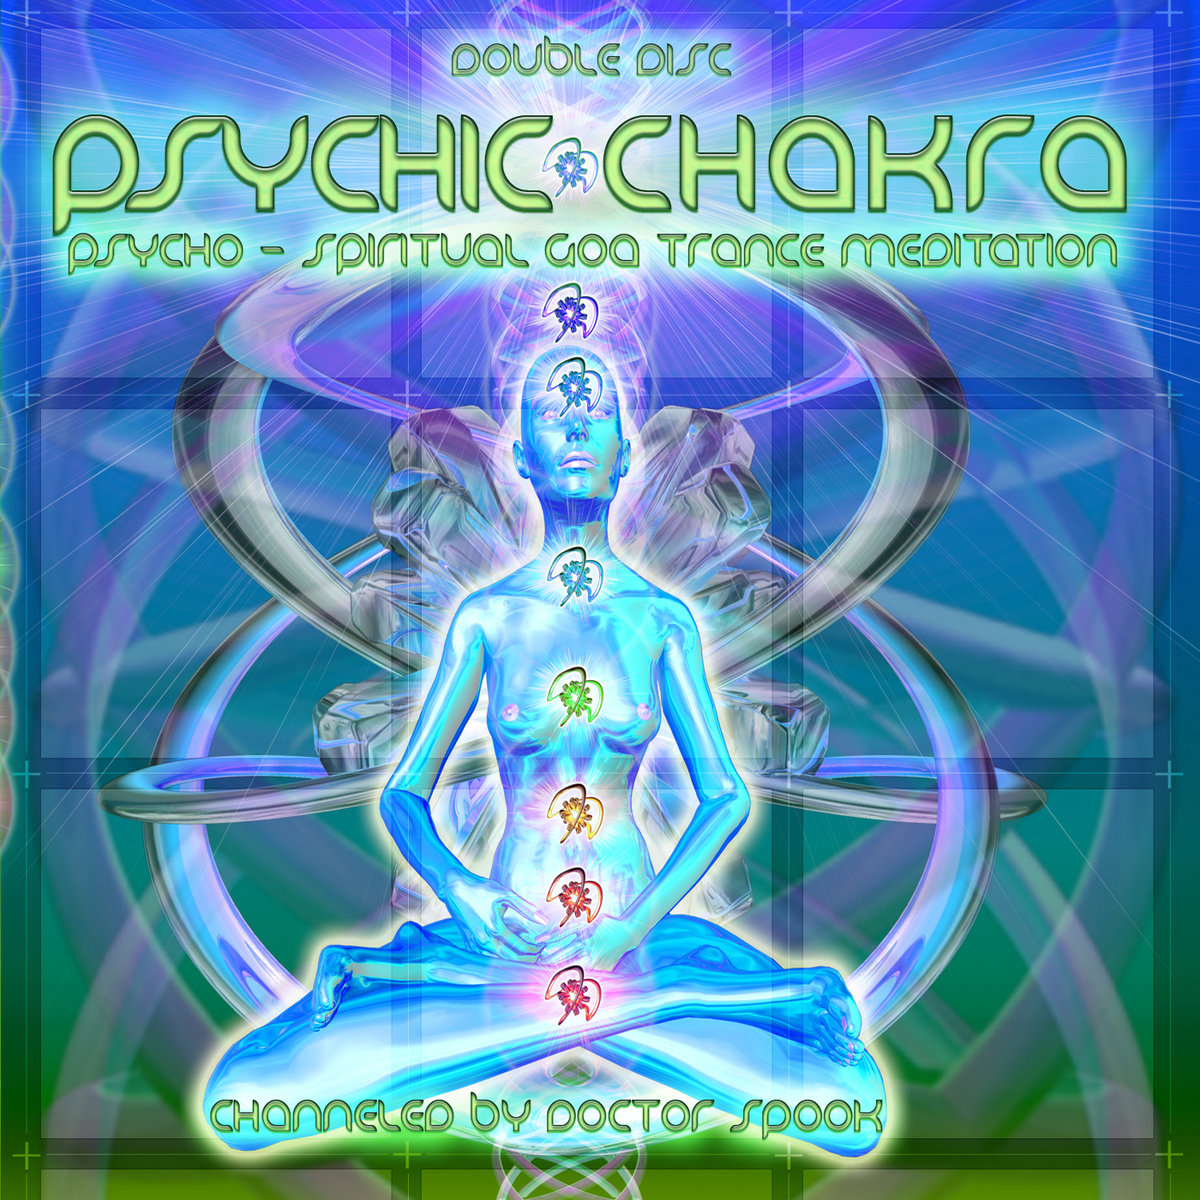 Bus - Full Monty Jacket @ 'Various Artists - Psychic Chakra (Channeled by Dr. Spook)' album (electronic, psychic chakra)